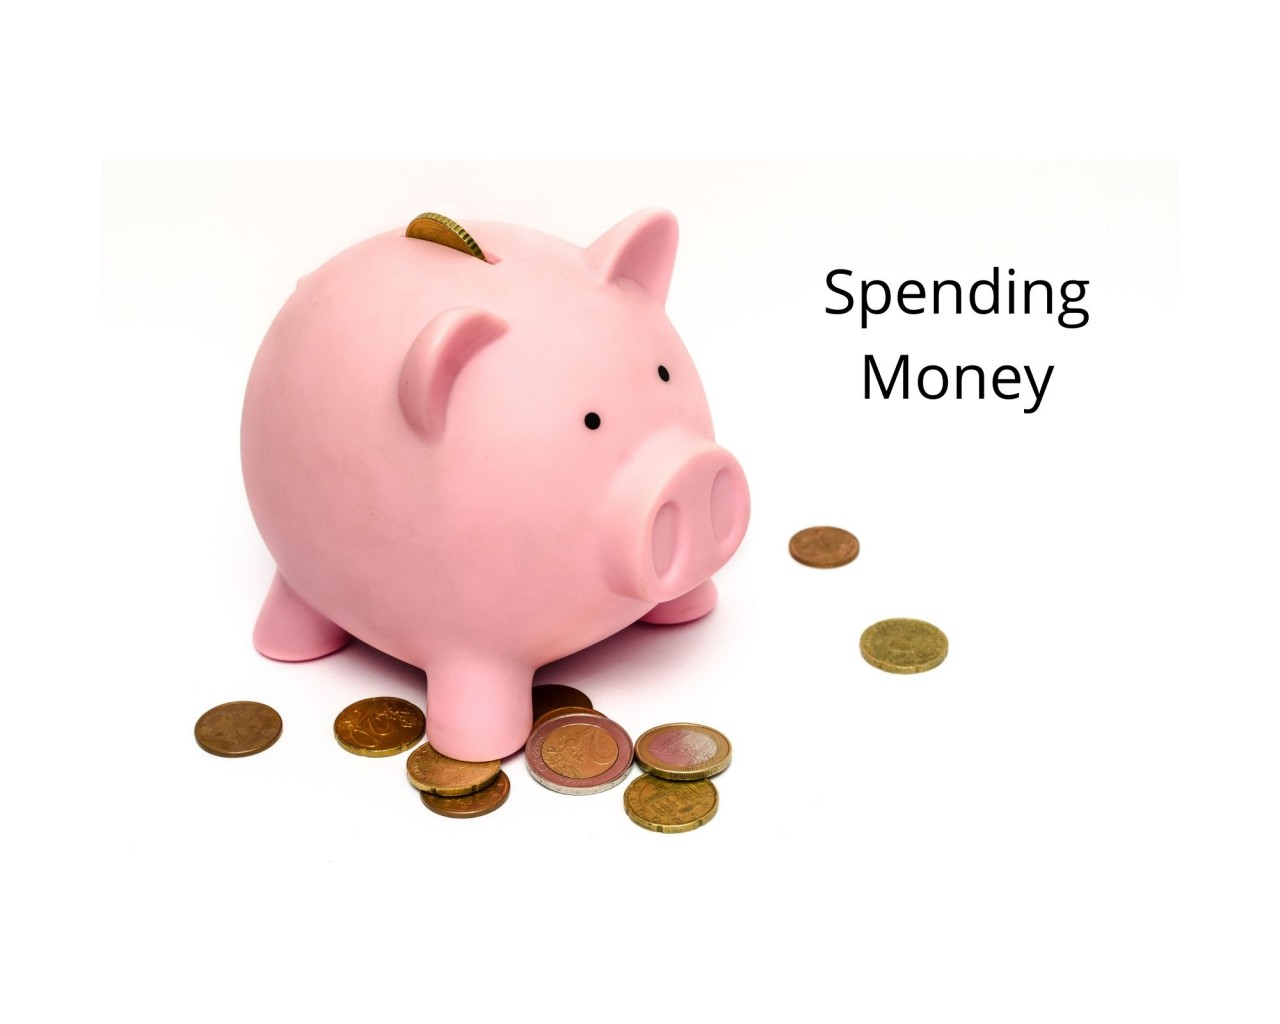 spending-money